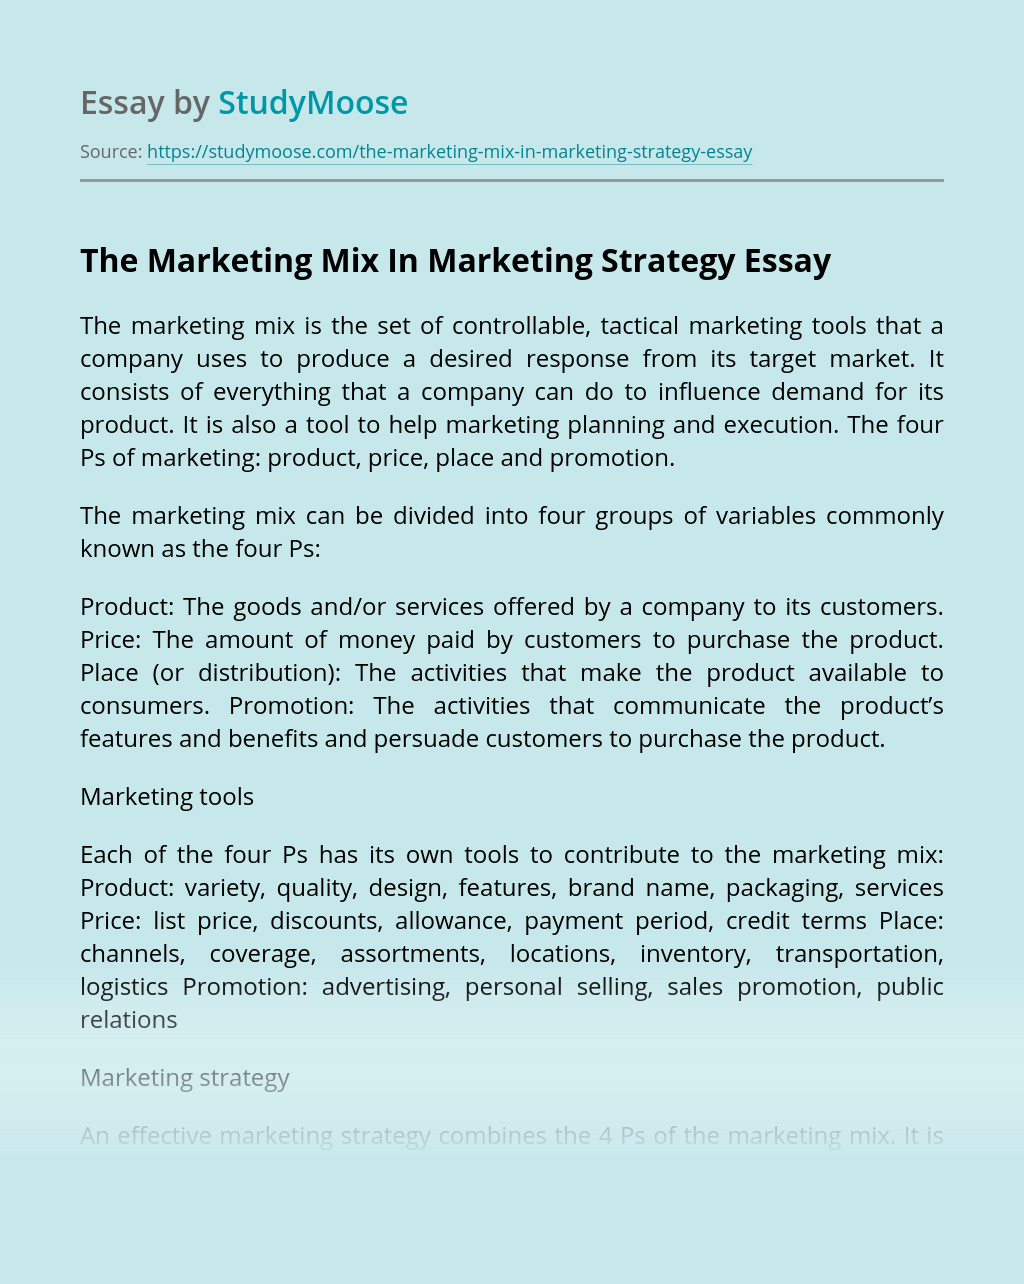 The Marketing Mix In Marketing Strategy